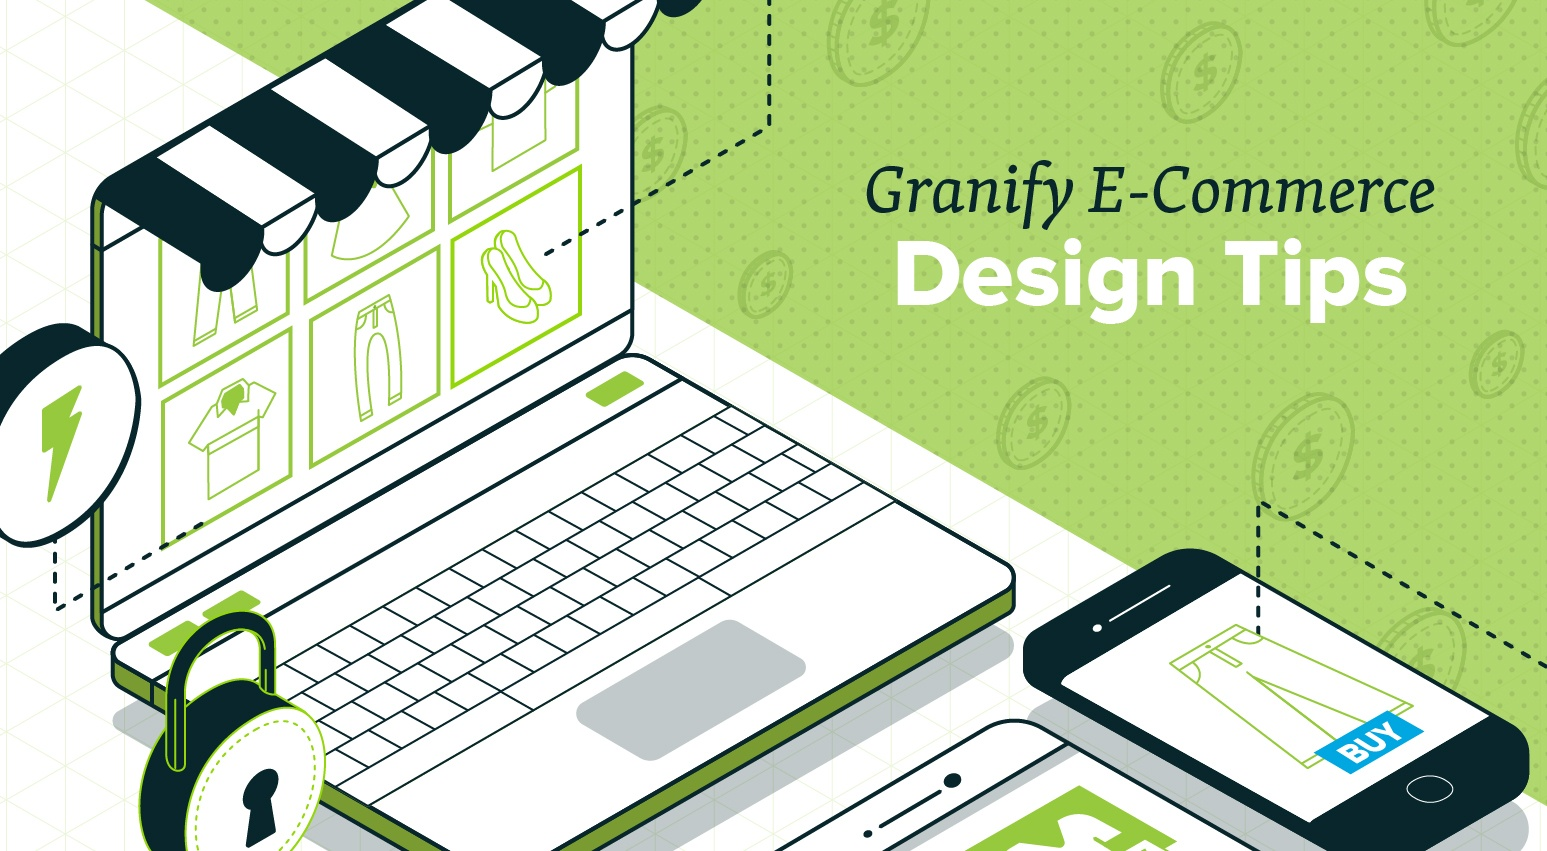 Granify Ecommerce Design Tips - Background Image